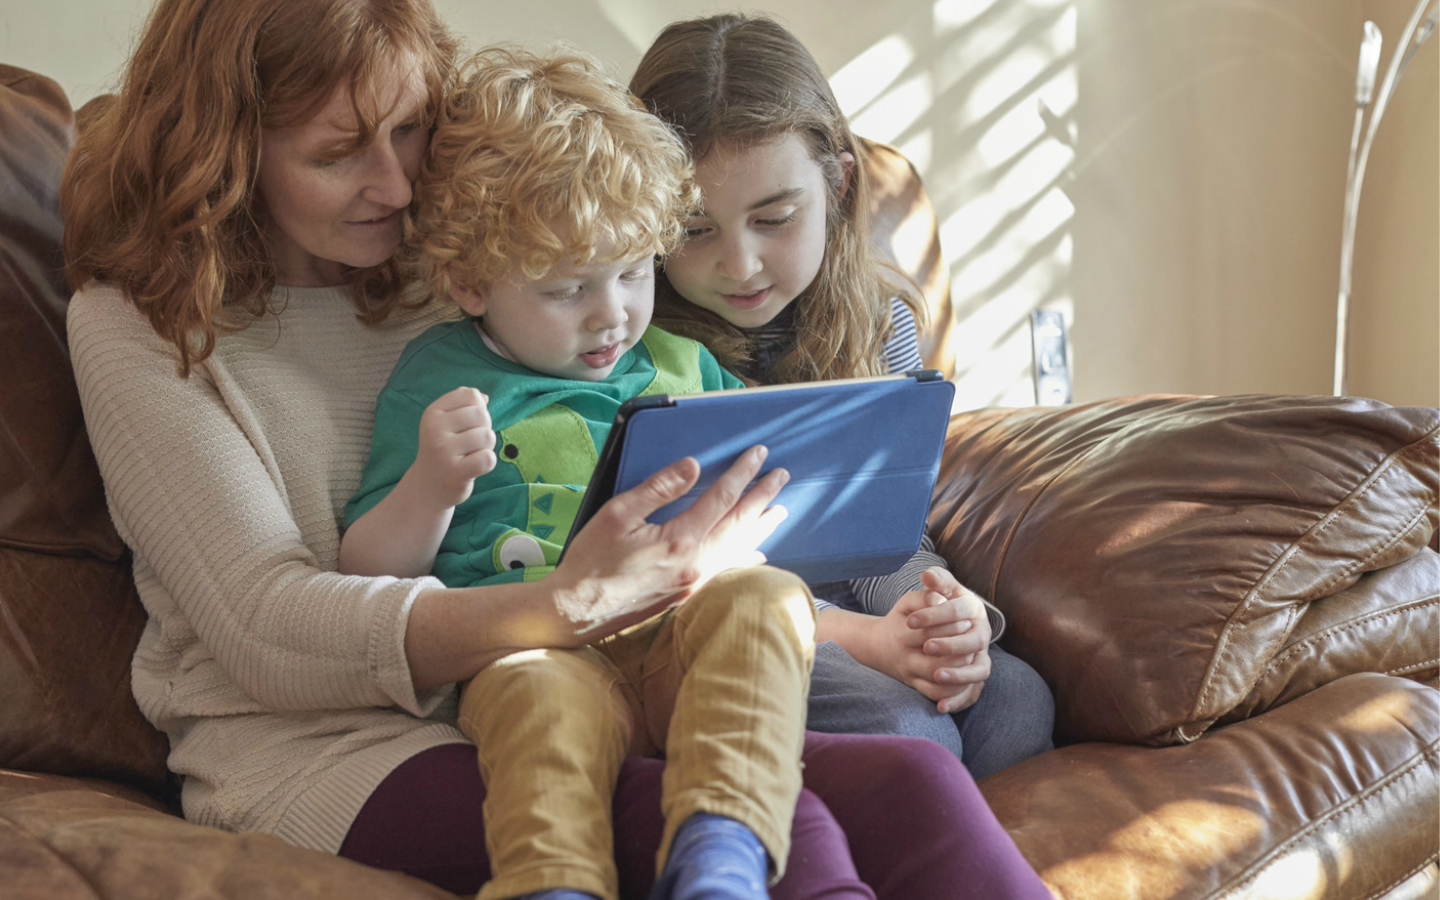 Mother and small children looking at tablet together